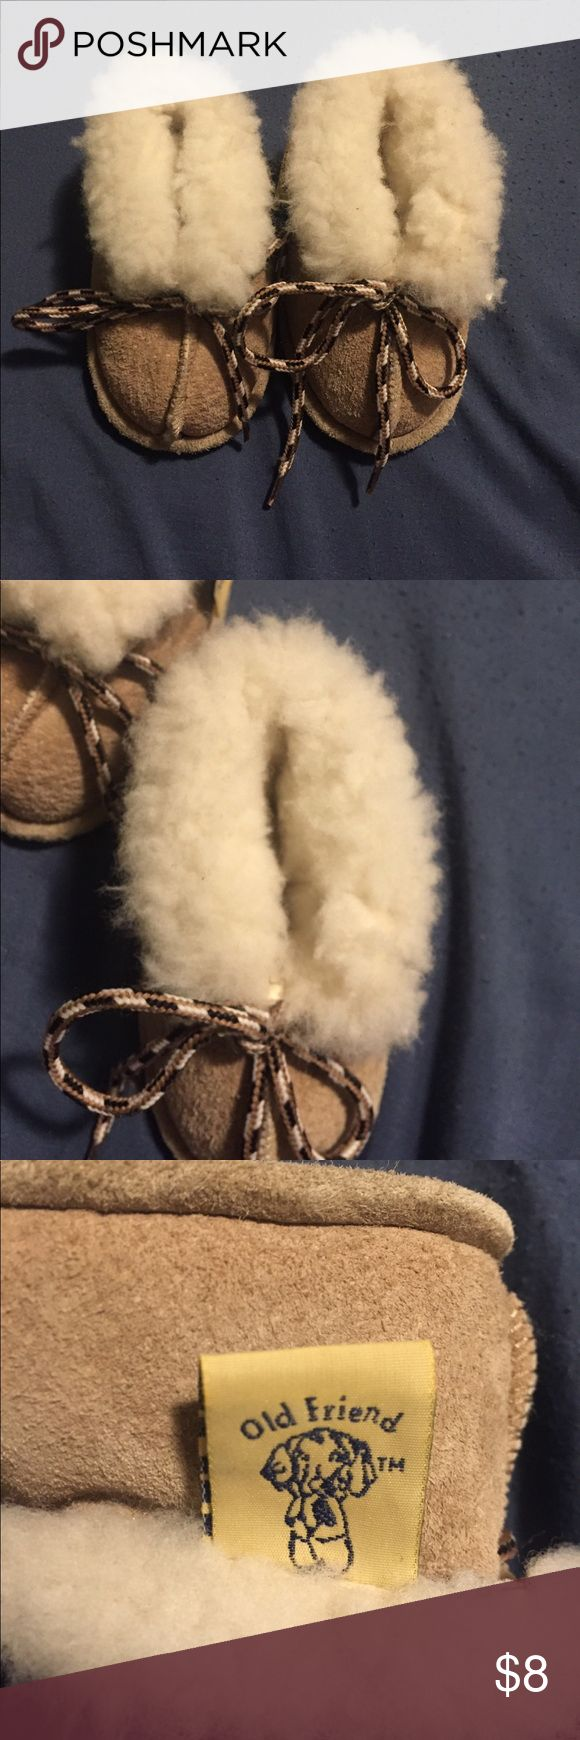 Old Friend Bootee Slippers 1-6 months sheepskin Leather and sheepskin booties in good, pre-loved condition. 1-6 months. Old Friend mark. old friend Shoes Slippers